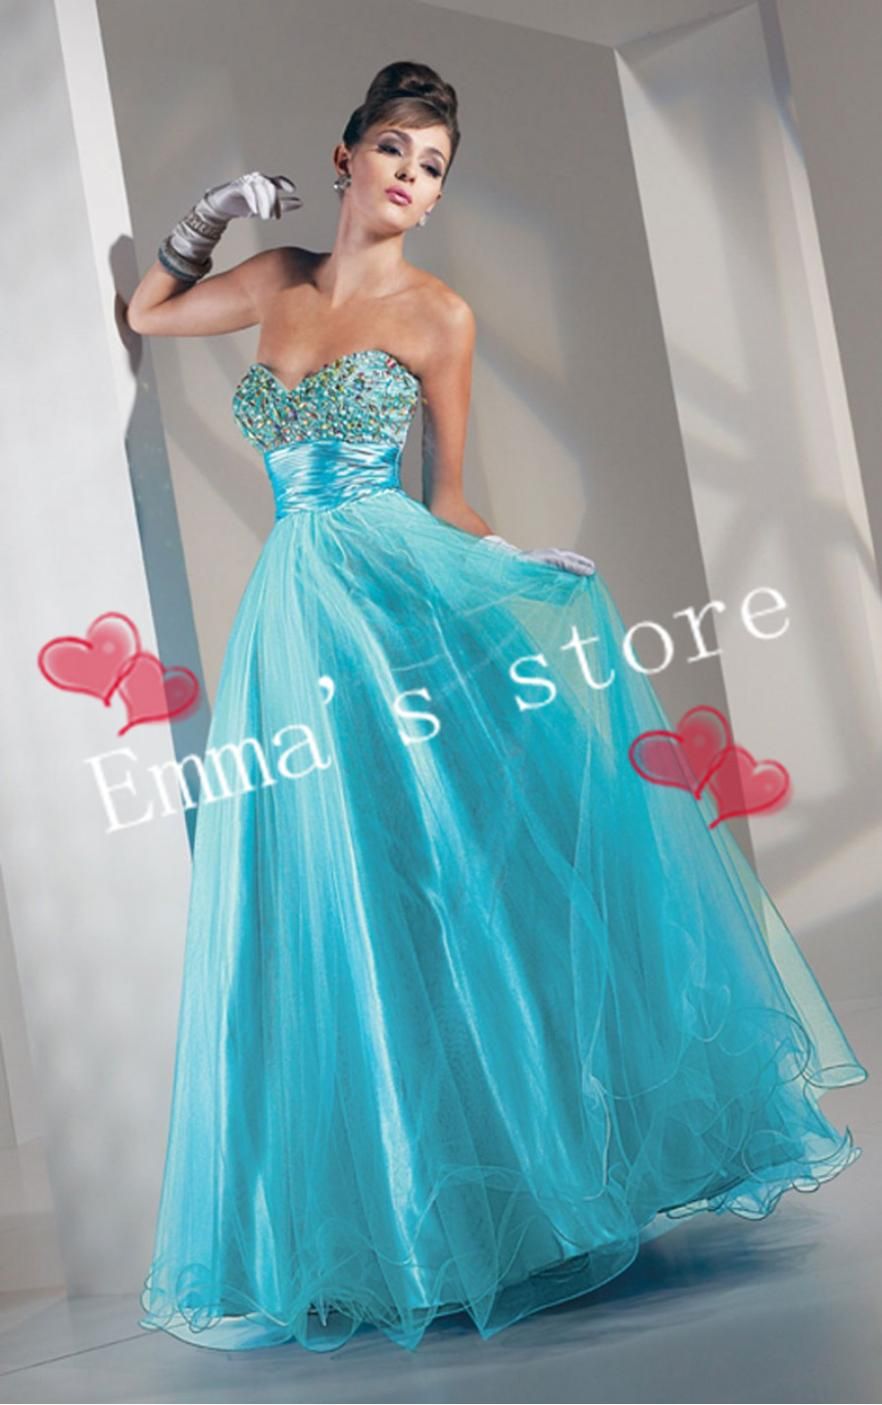 Plus Size Prom Dresses - Page 334 of 509 - Short Prom Dresses Boohoo